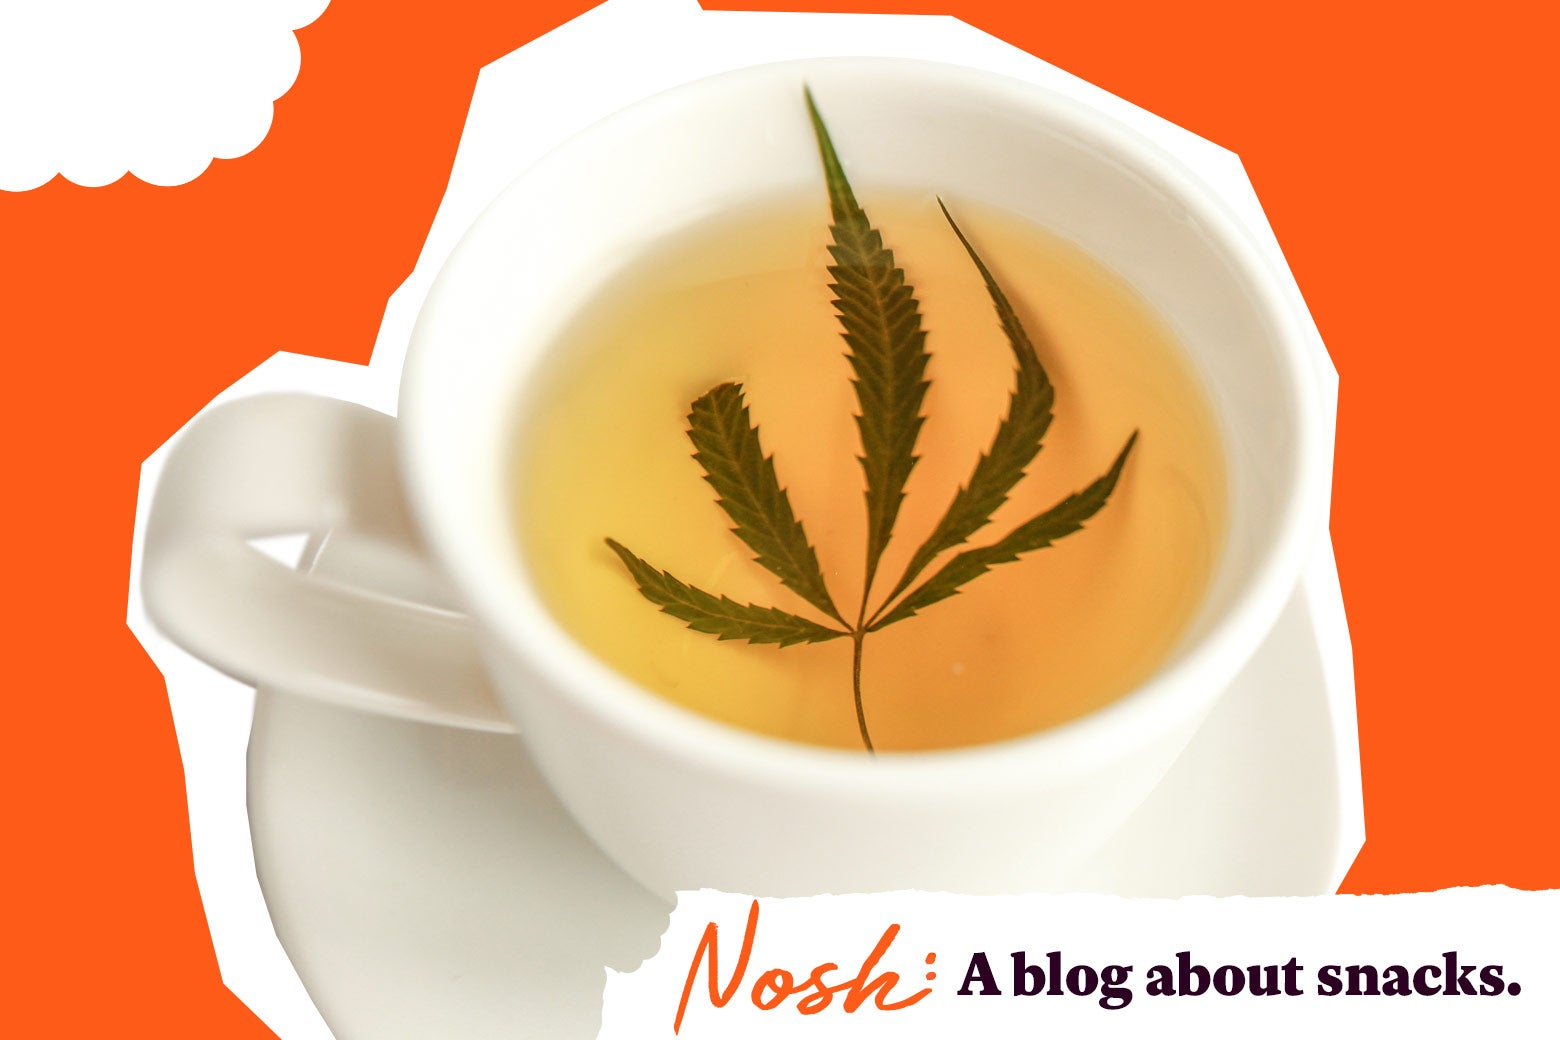 A cup of tea with a marijuana leaf in it.